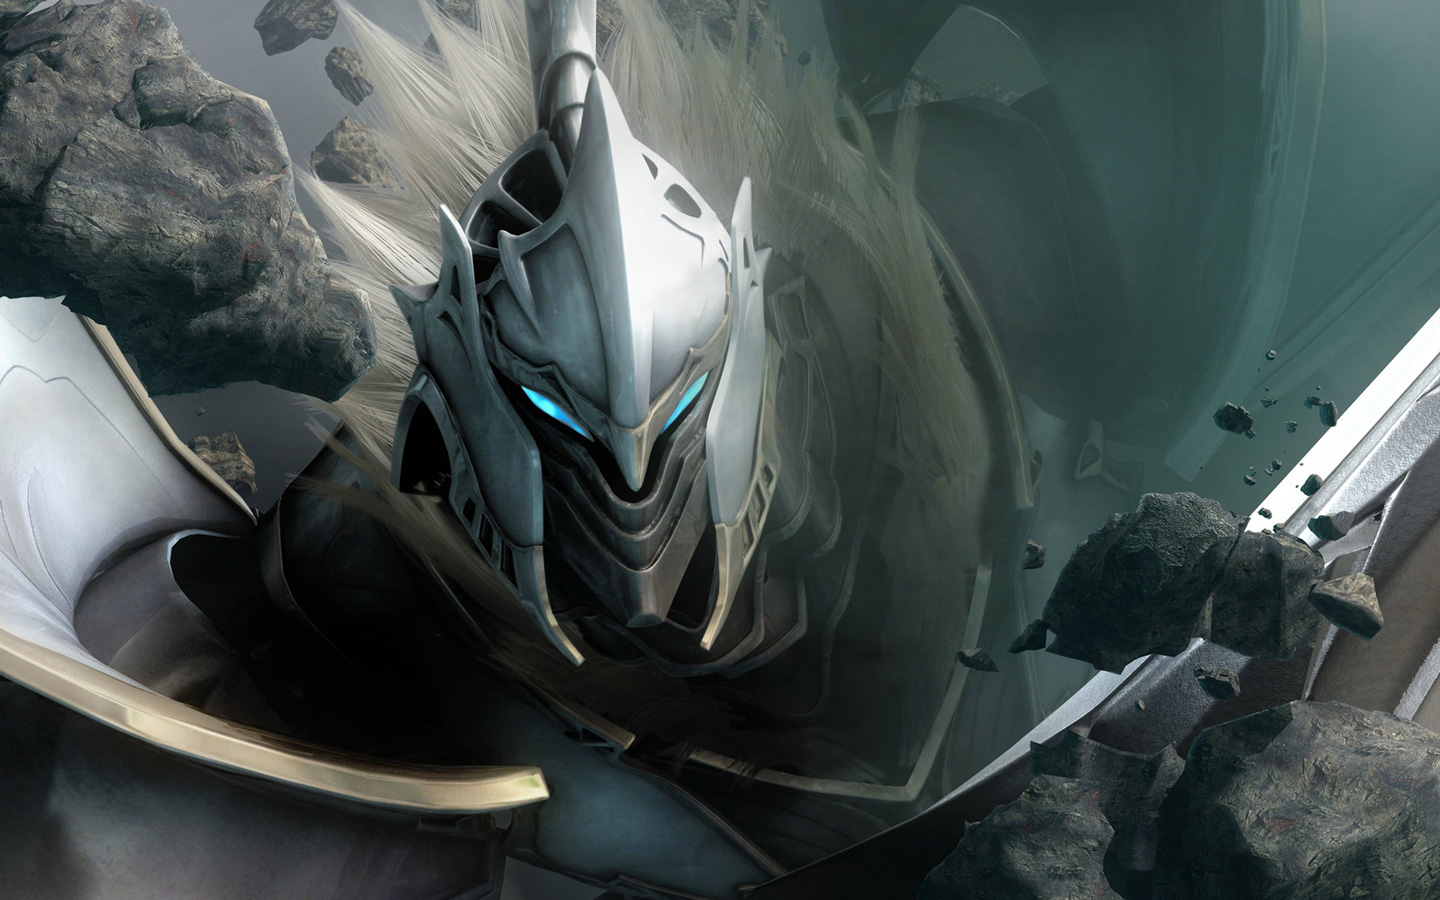 Free White Knight Chronicles Wallpaper in 1440x900